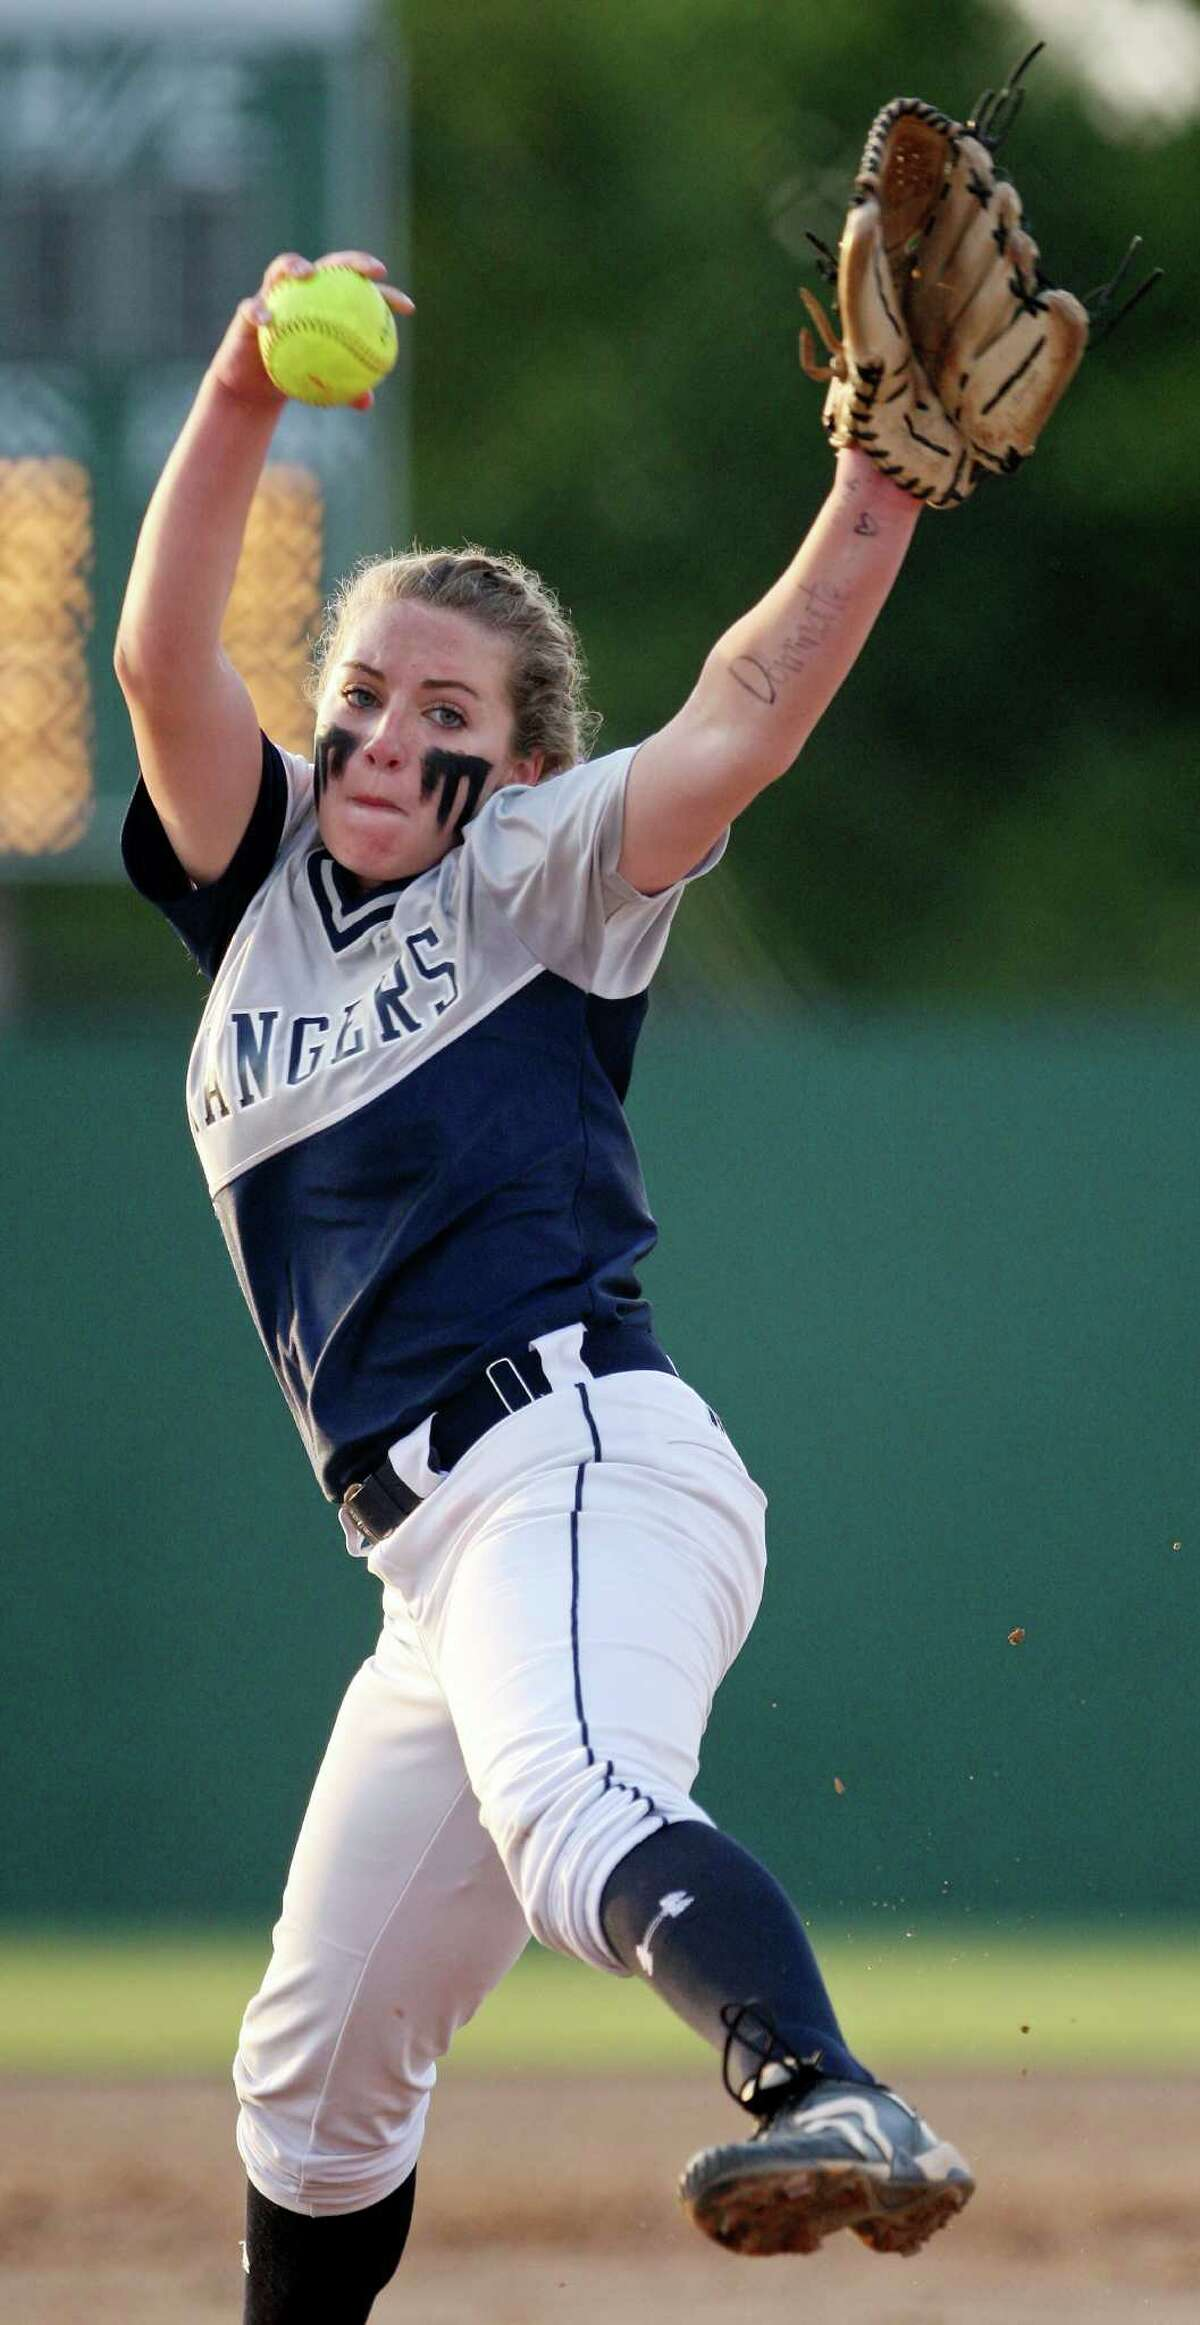 Smithson Valley's Regan Mergele pitches against New Braunfels Canyon during their Region IV-4A final softball game Thursday, May 24, 2012 at NEISD Softball Complex. Smithson Valley won 7-5.